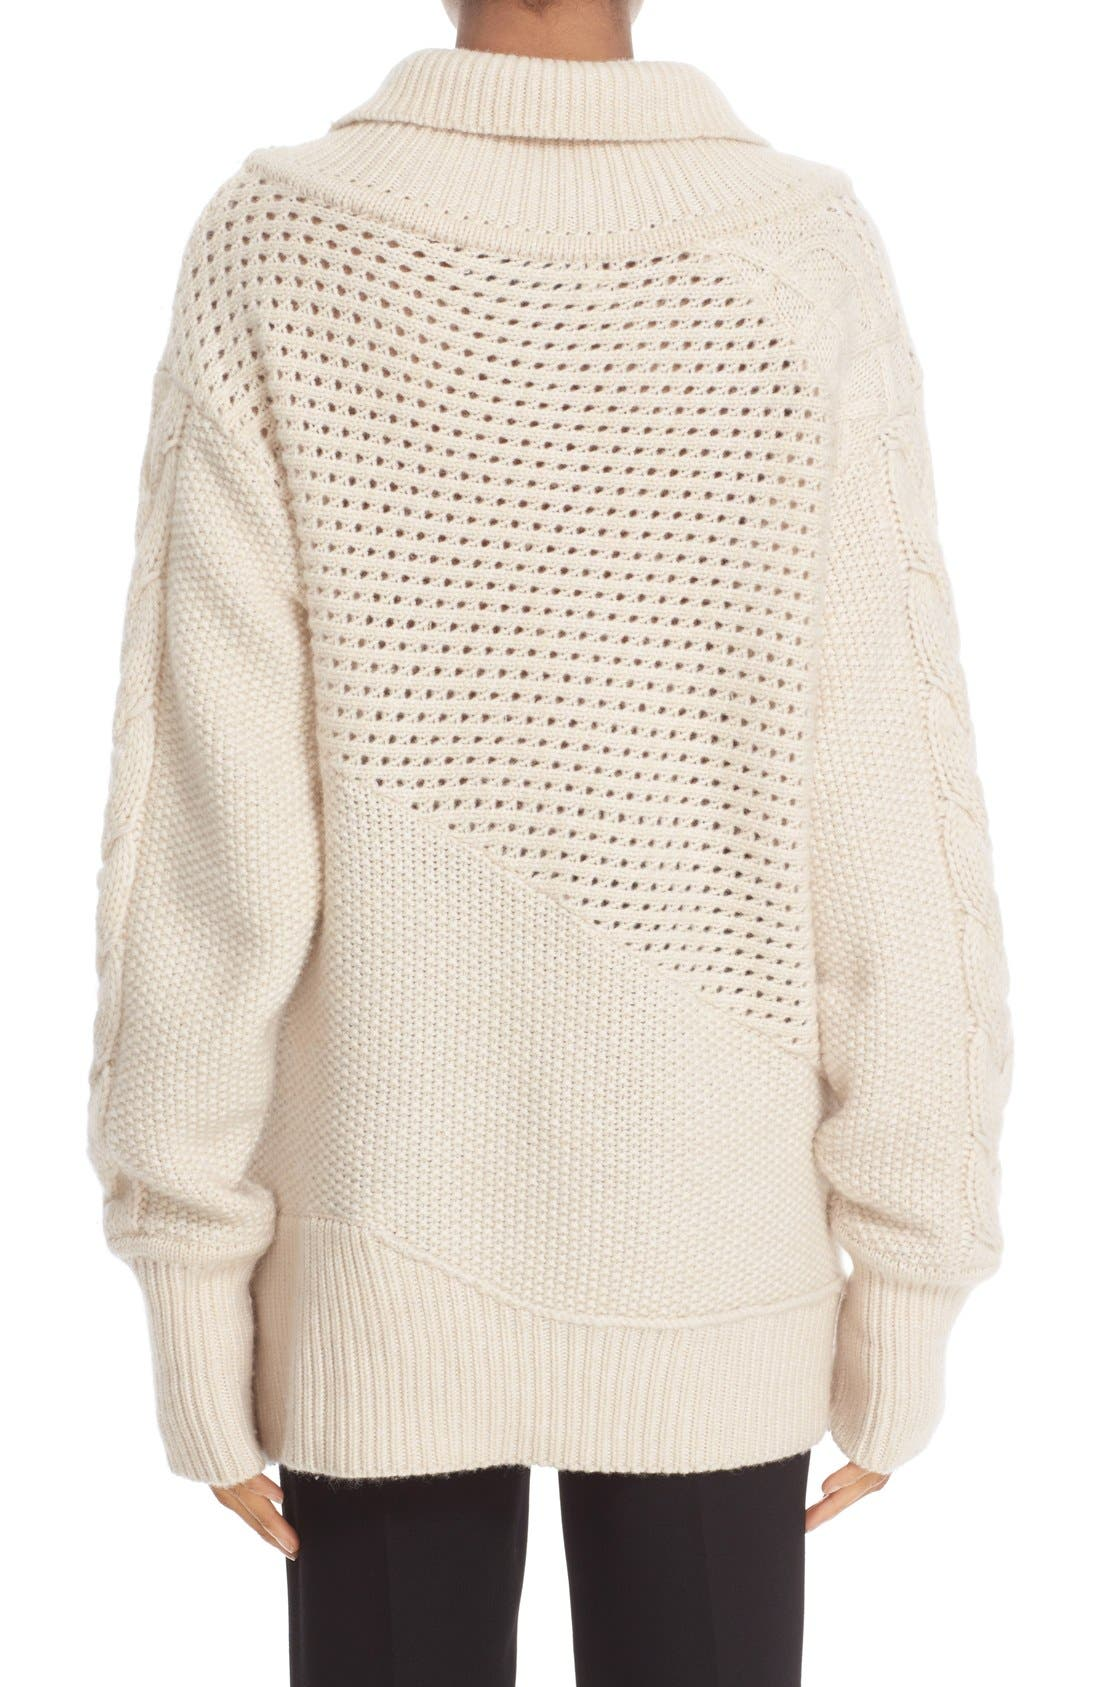 PRABAL GURUNG, Cable Knit Cashmere Sweater, Alternate thumbnail 4, color, 904